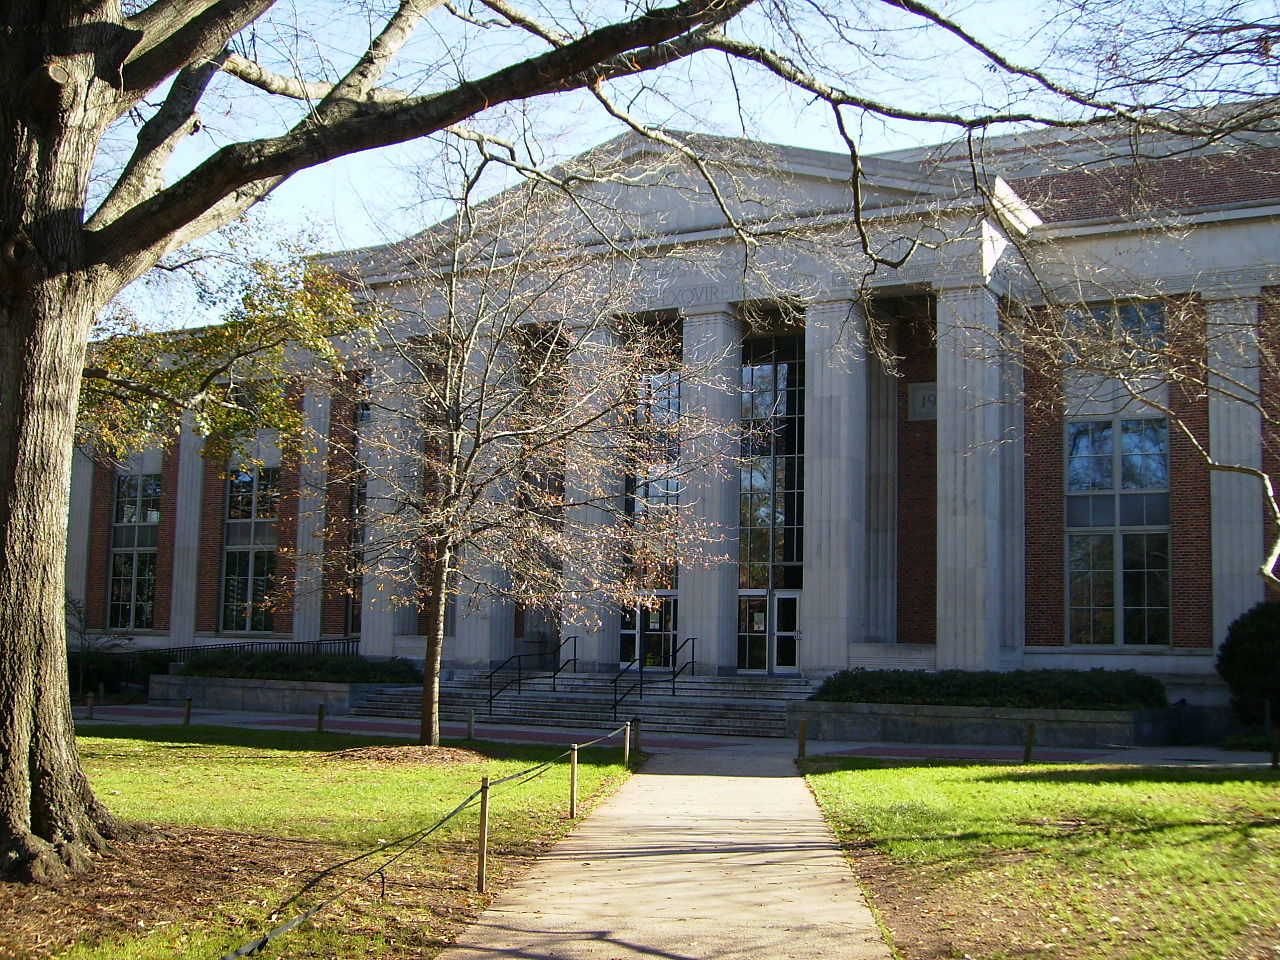 Collaborations between UGA and Emory make these 2 universities good places to market lab supplies in 2015.